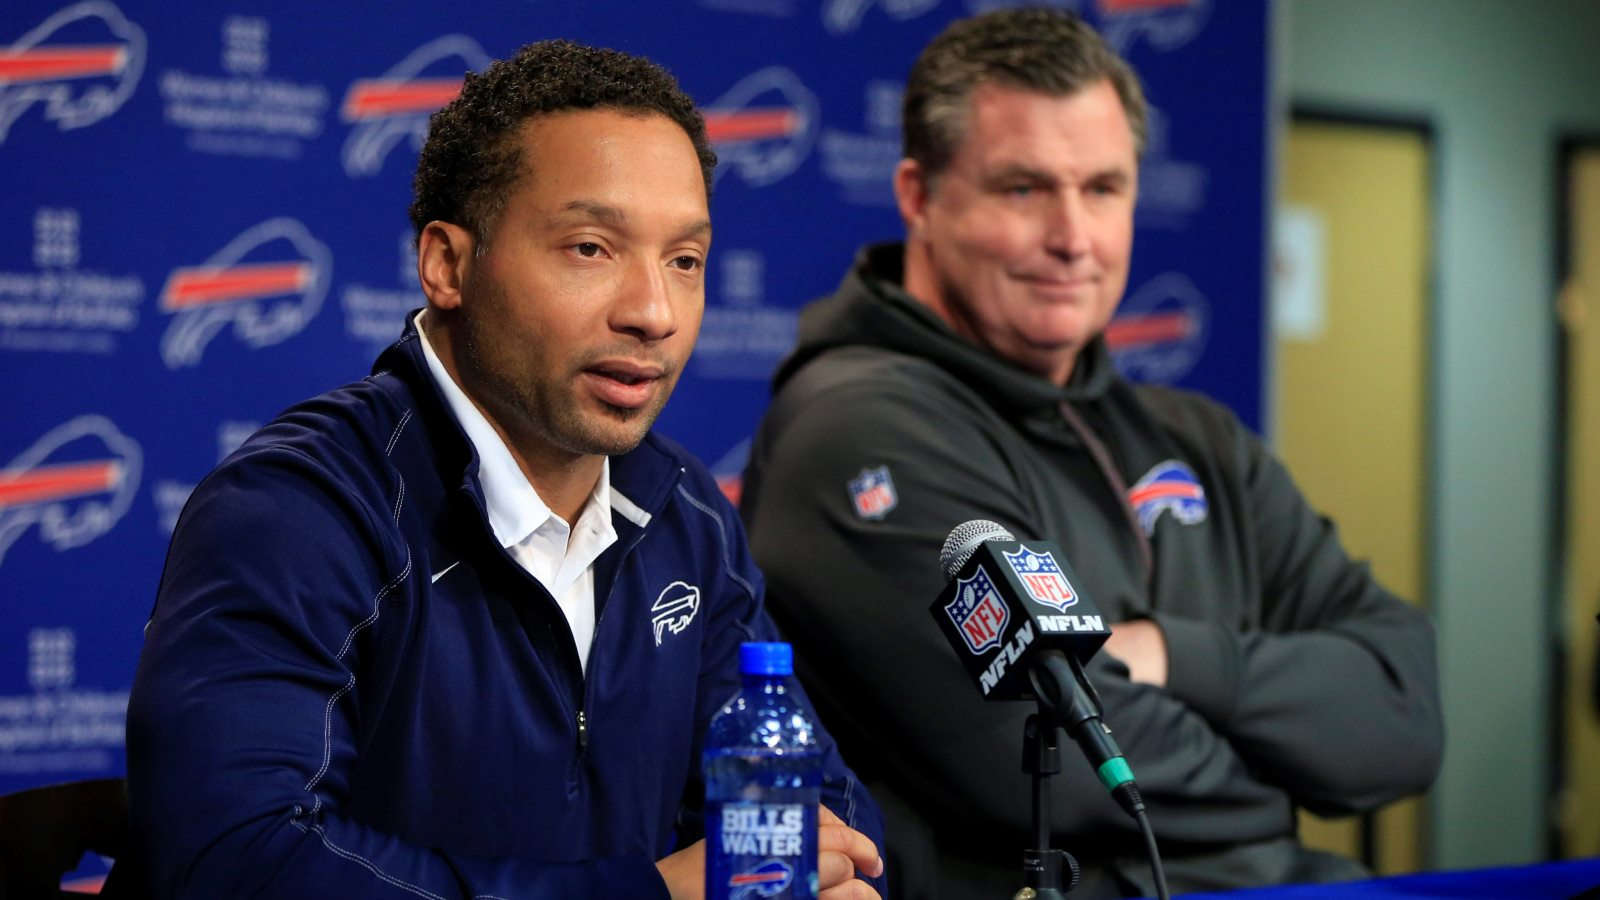 Bills General Manager Doug Whaley and coach Doug Marrone answered questions about the Bills' 2014 season at an end-of-year press conference. (Harry Scull Jr./Buffalo News)